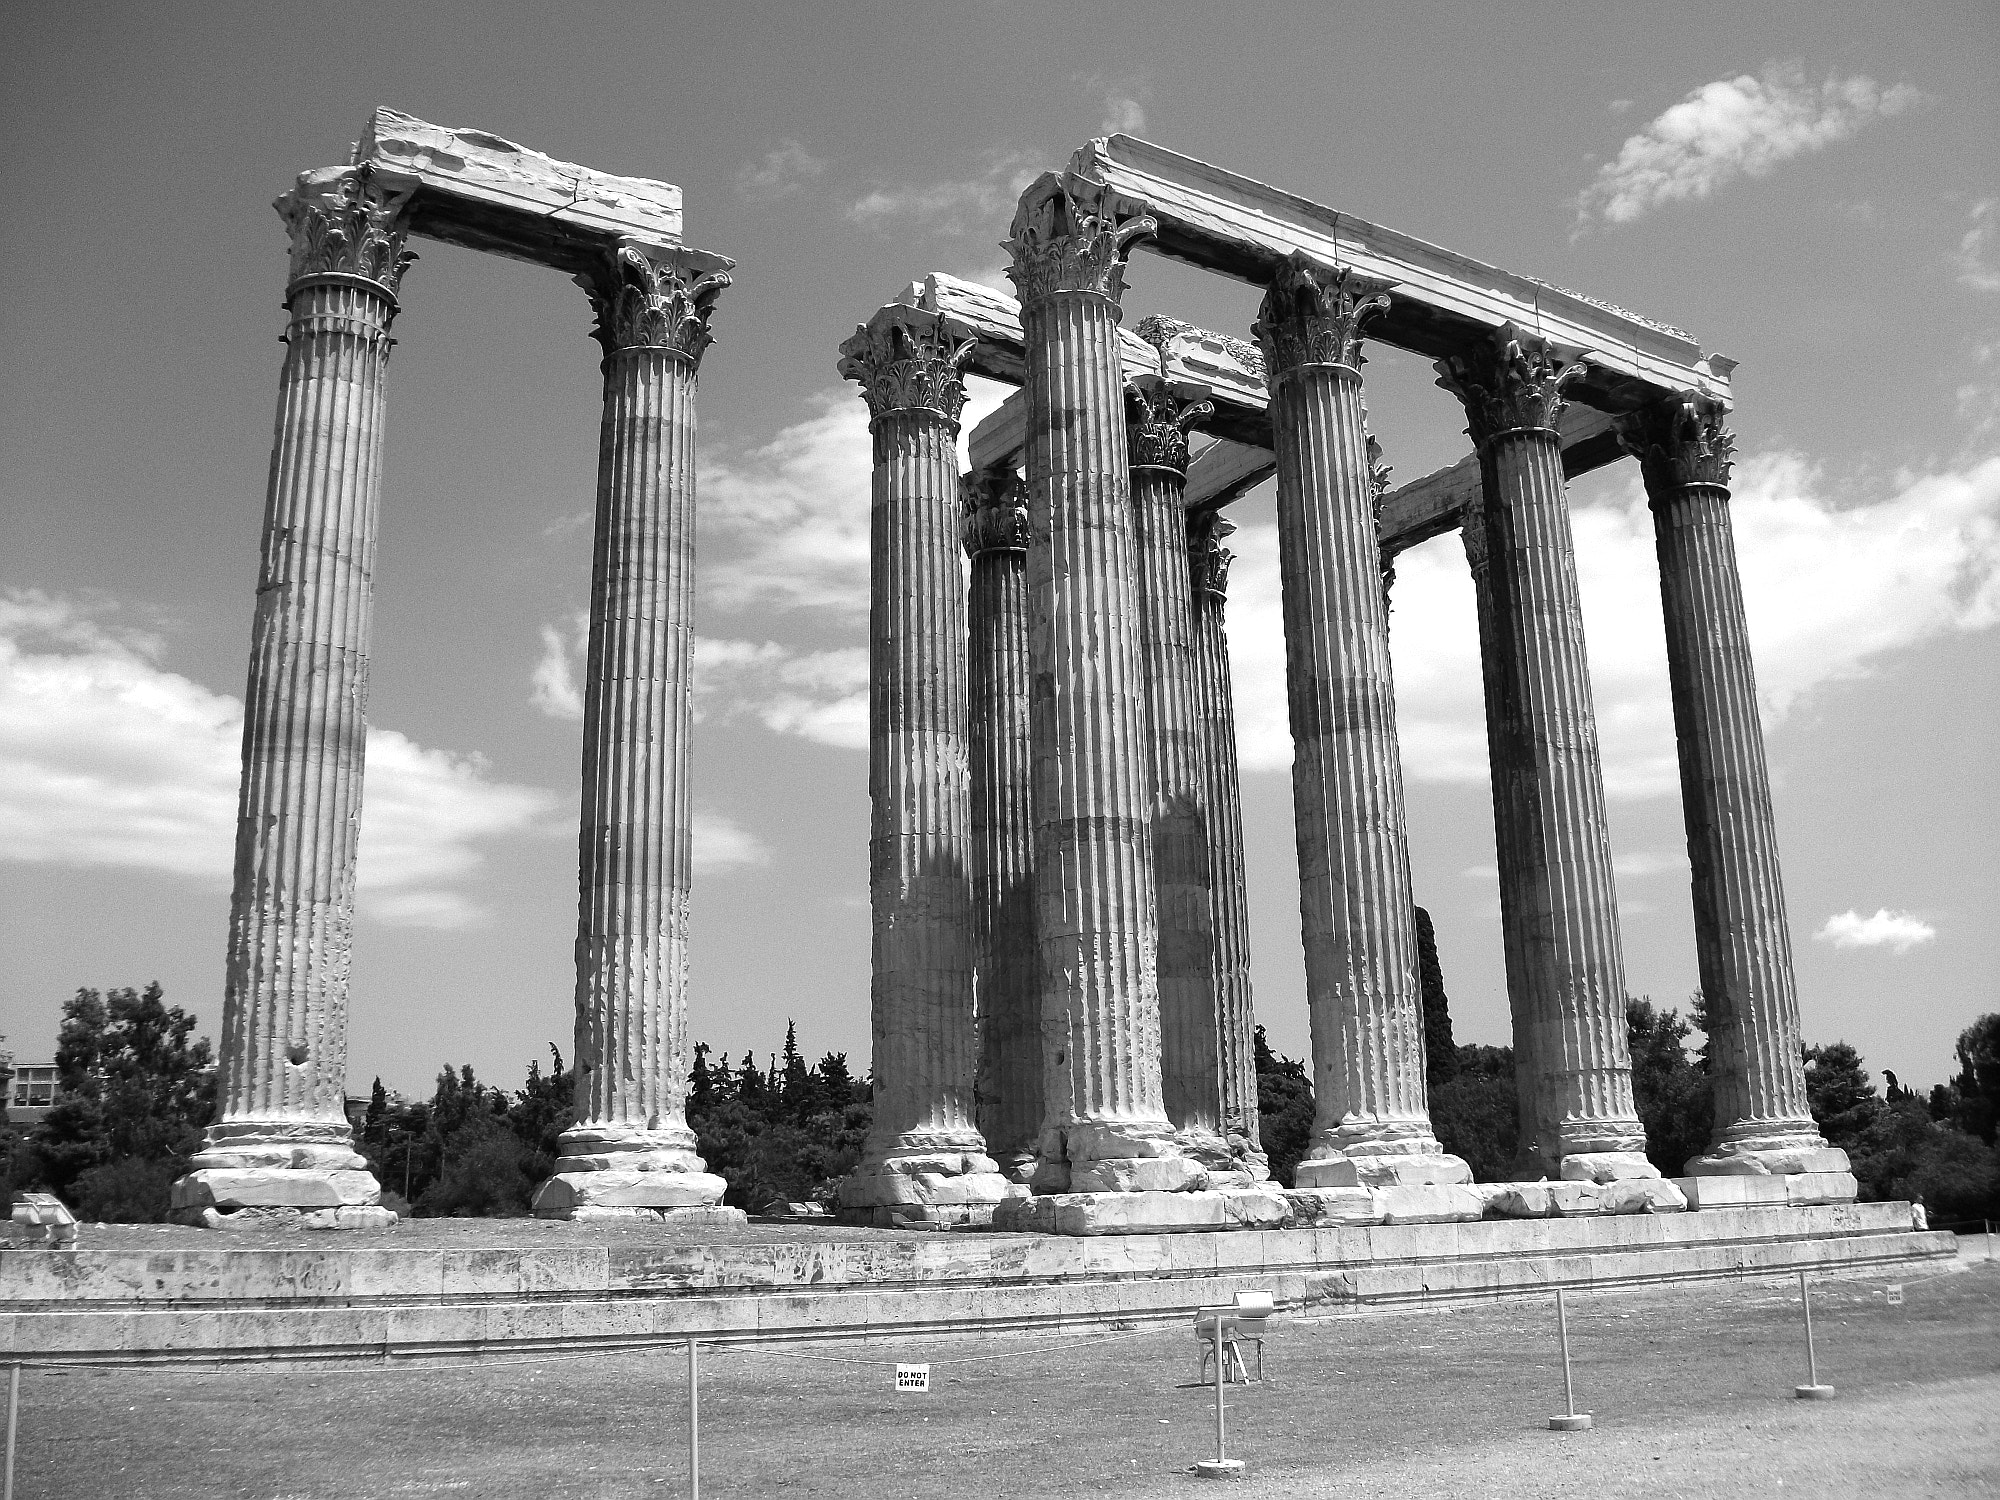 Photograph Temple of Zeus by Fabian Spiteri on 500px